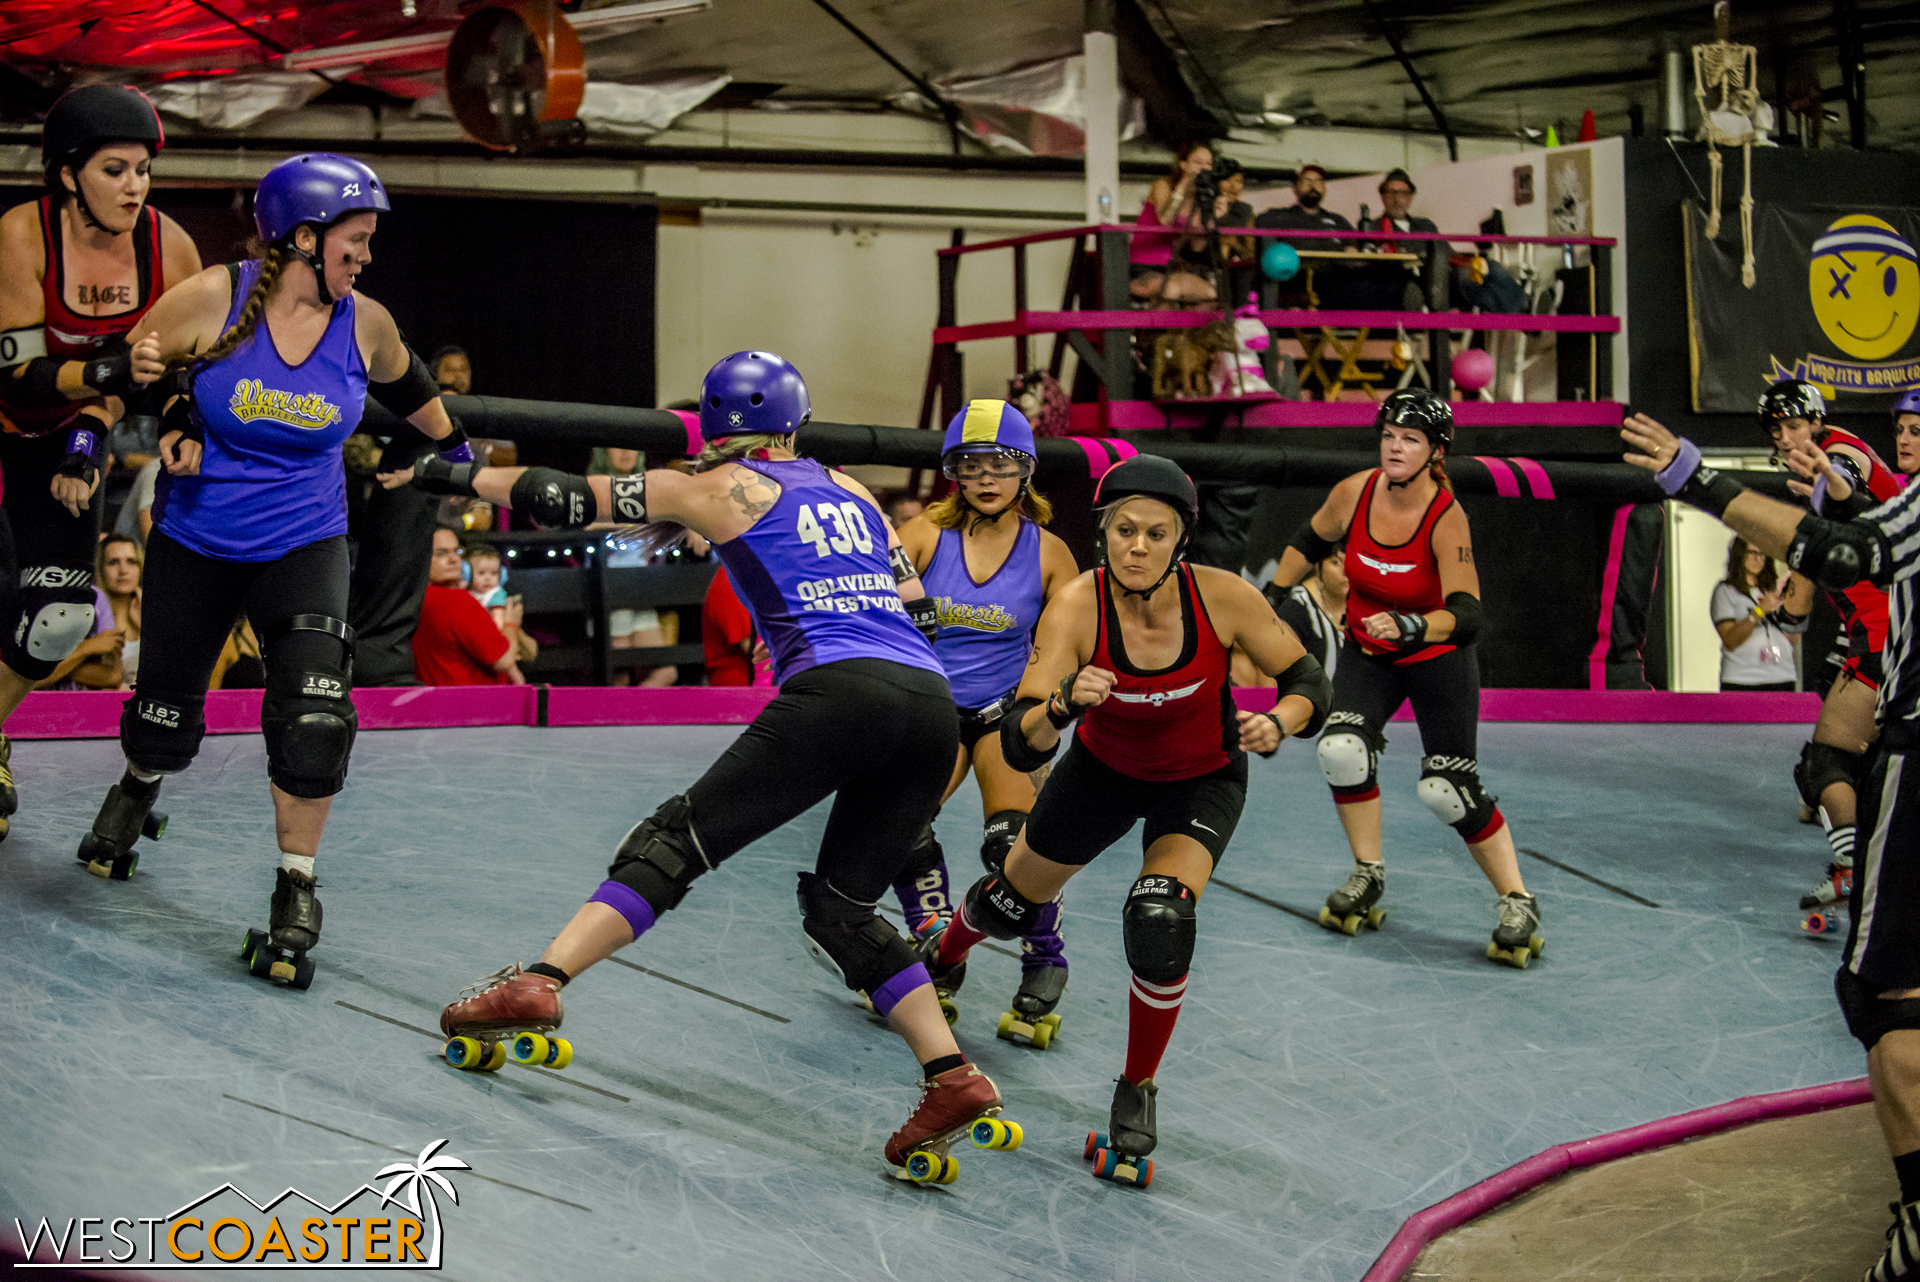 As a blocker attempts to hip check, the red-clad Fight Crew jammer shifts to evade the check.